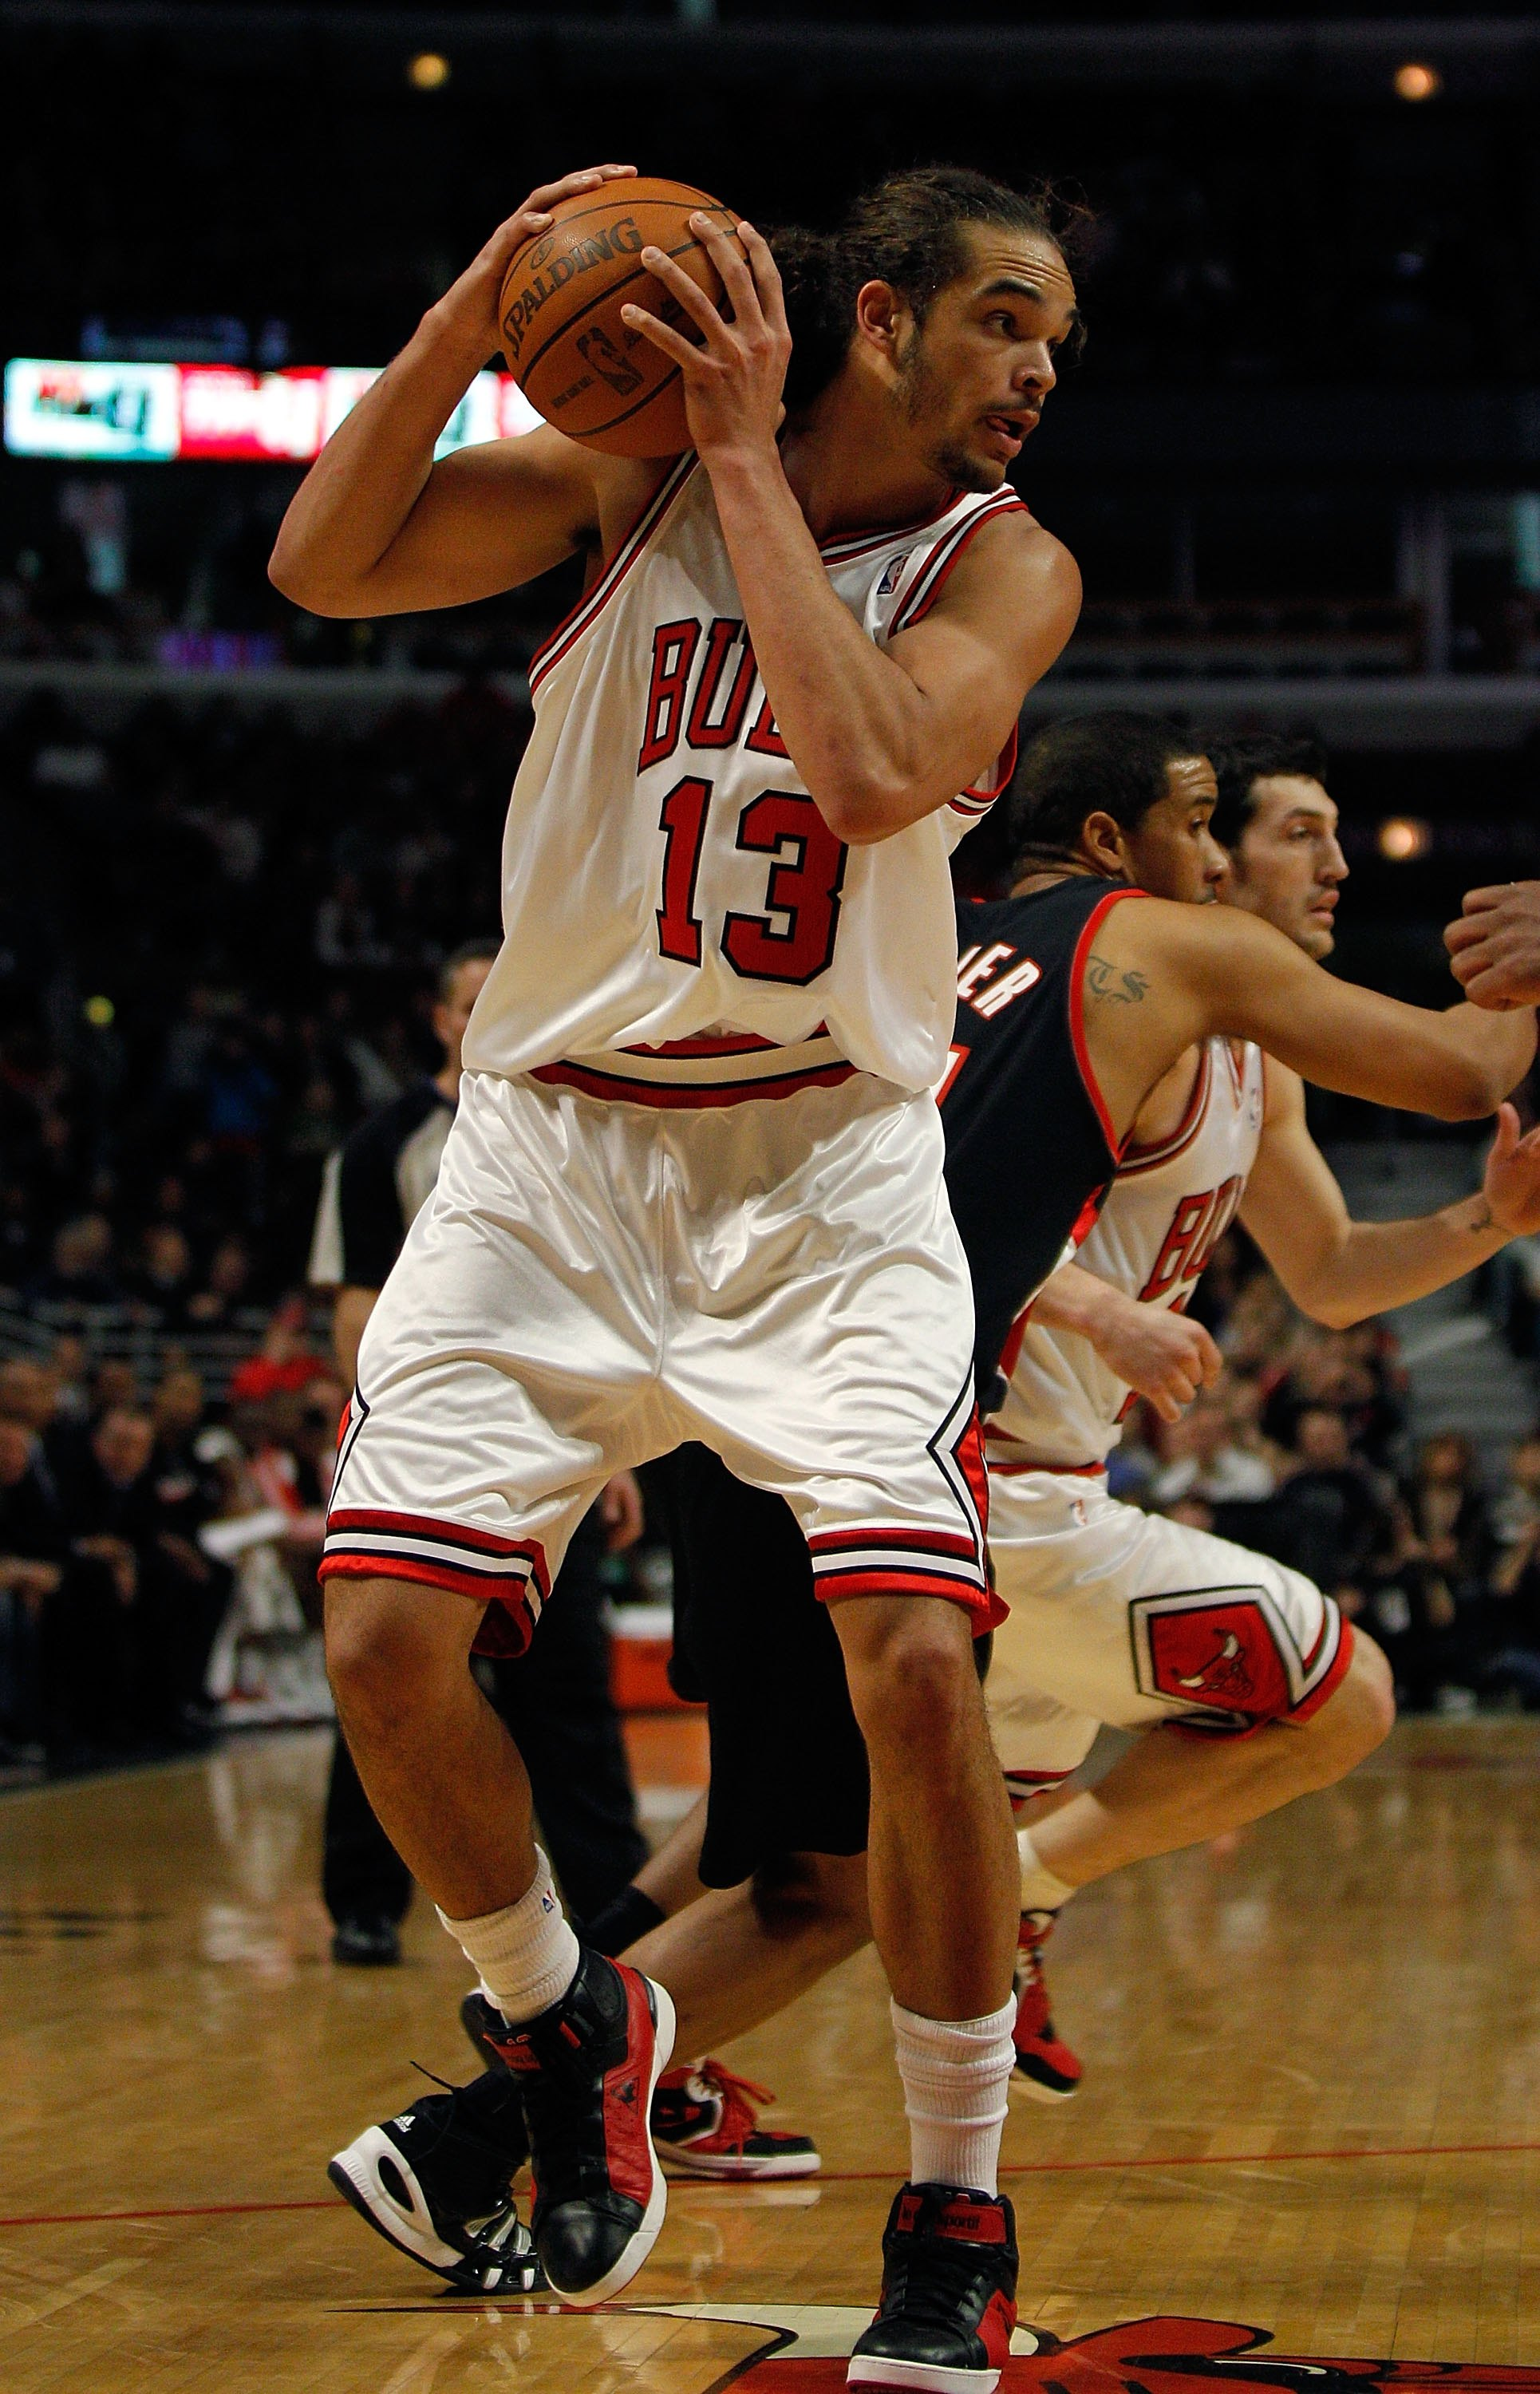 CHICAGO - FEBRUARY 26: Joakim Noah #13 of the Chicago Bulls looks to pass against the Portland Trail Blazers at the United Center on February 26, 2010 in Chicago, Illinois. The Bulls defeated the Trail Blazers 115-111 in overtime. NOTE TO USER: User expre